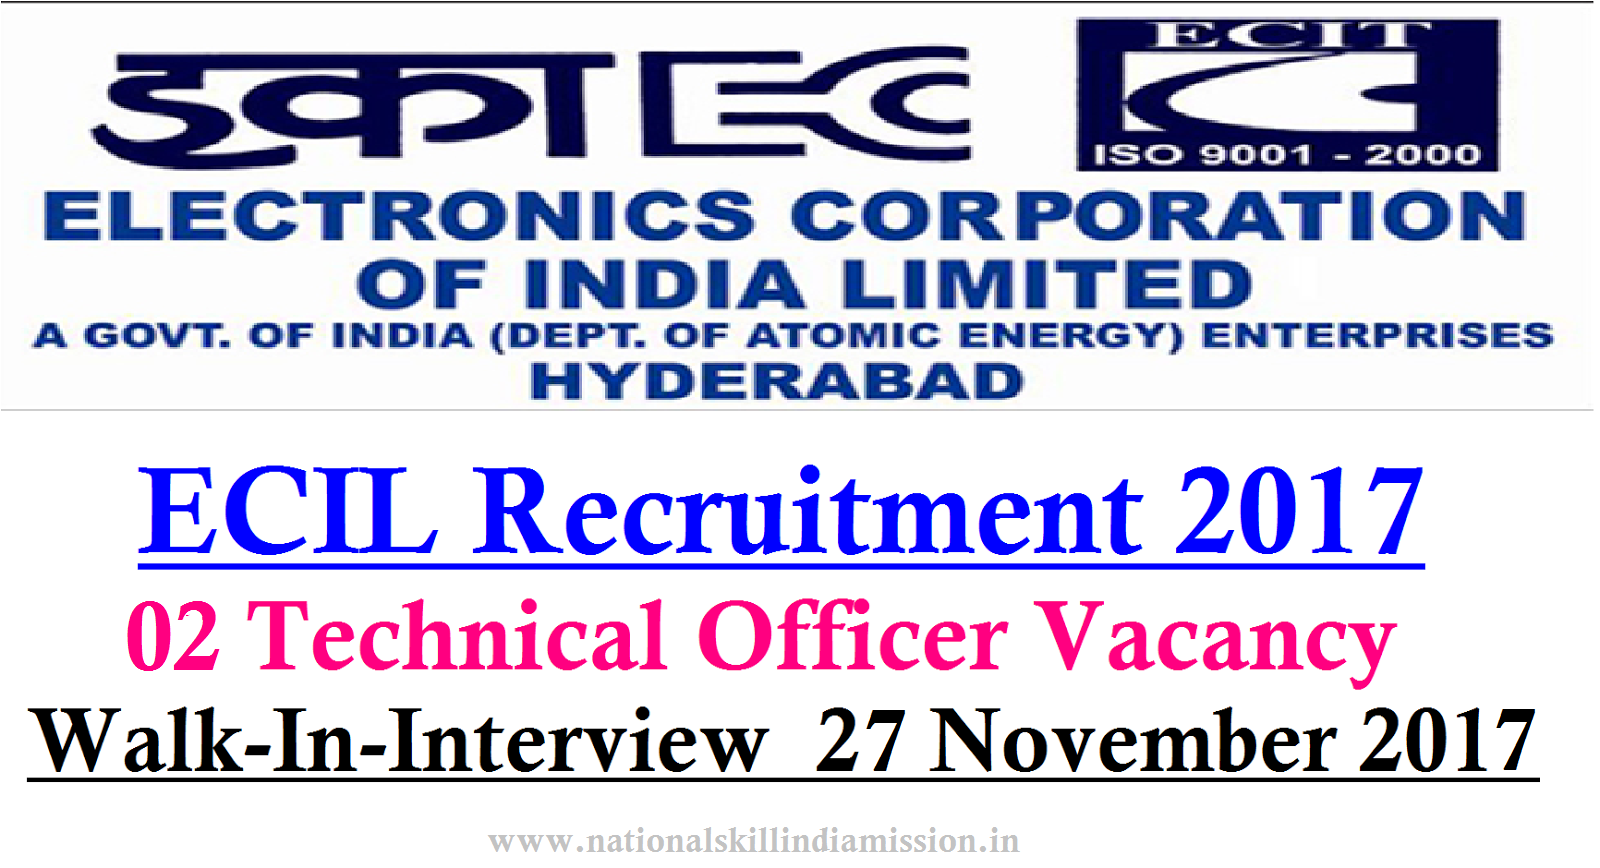 Engineering Jobs - Electronics Corporation of India Limited - ECIL Recruitment - 02 Technical Officer - Walk-in-Interview 27 November 2017